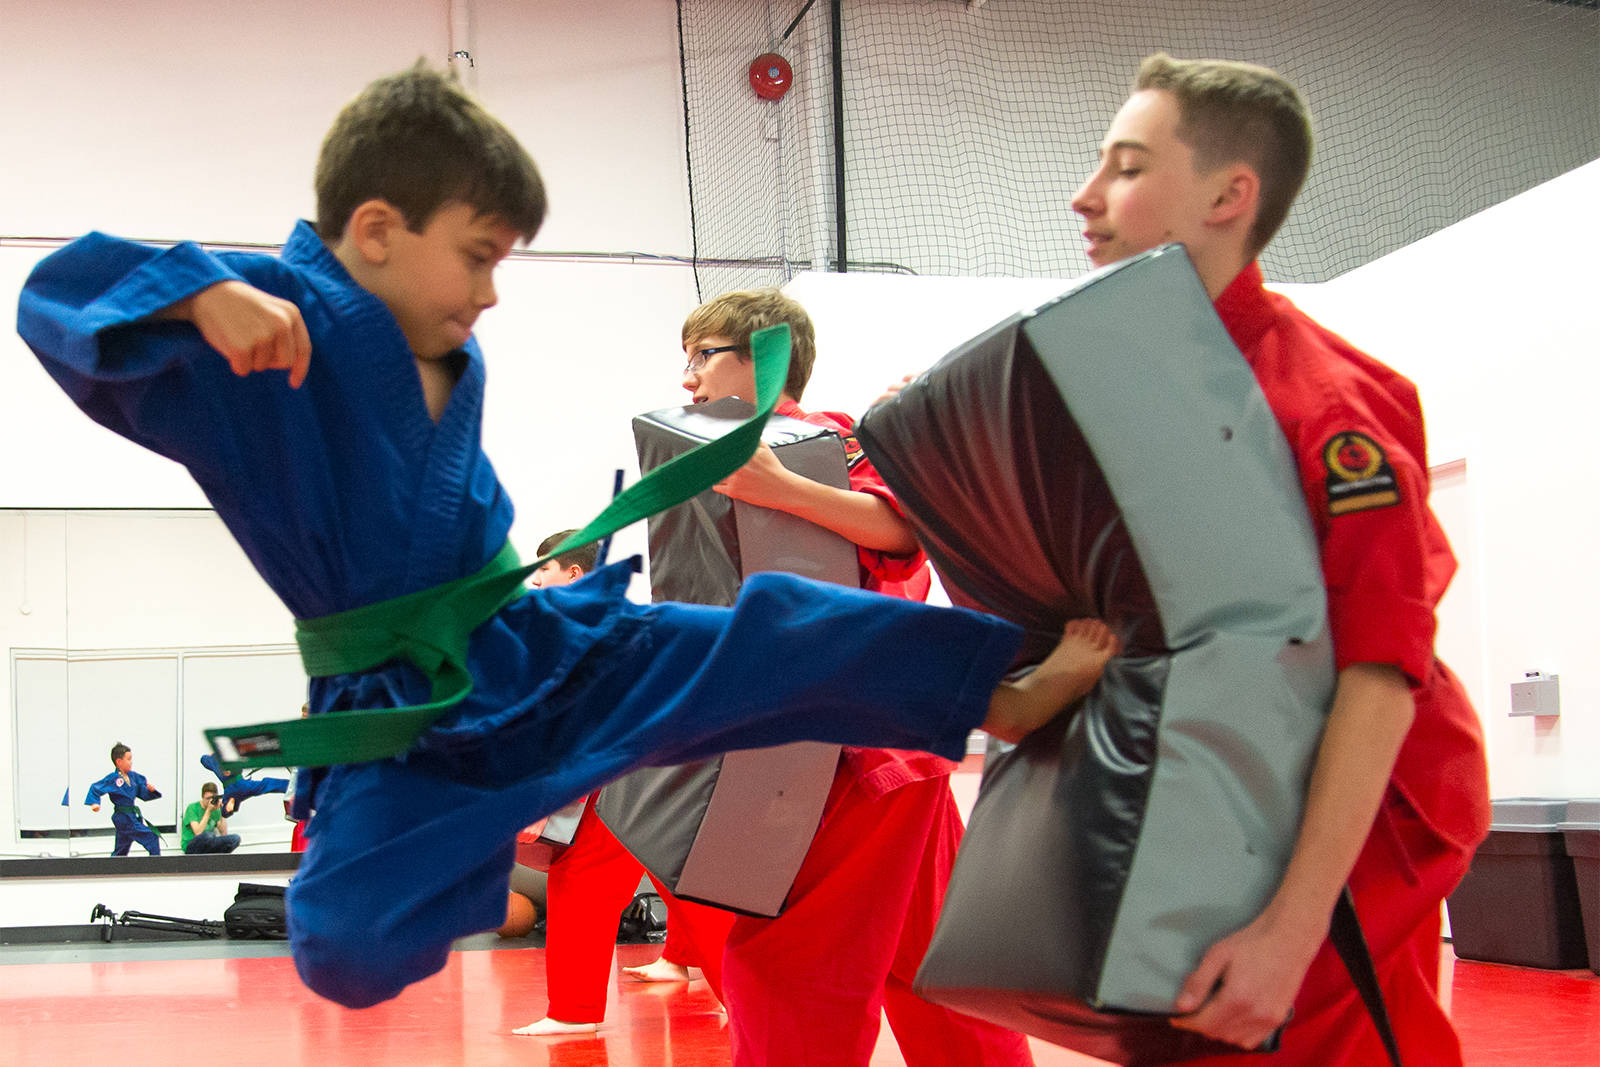 Respect, Grace and Perseverance: Life lessons learned at the Dojo